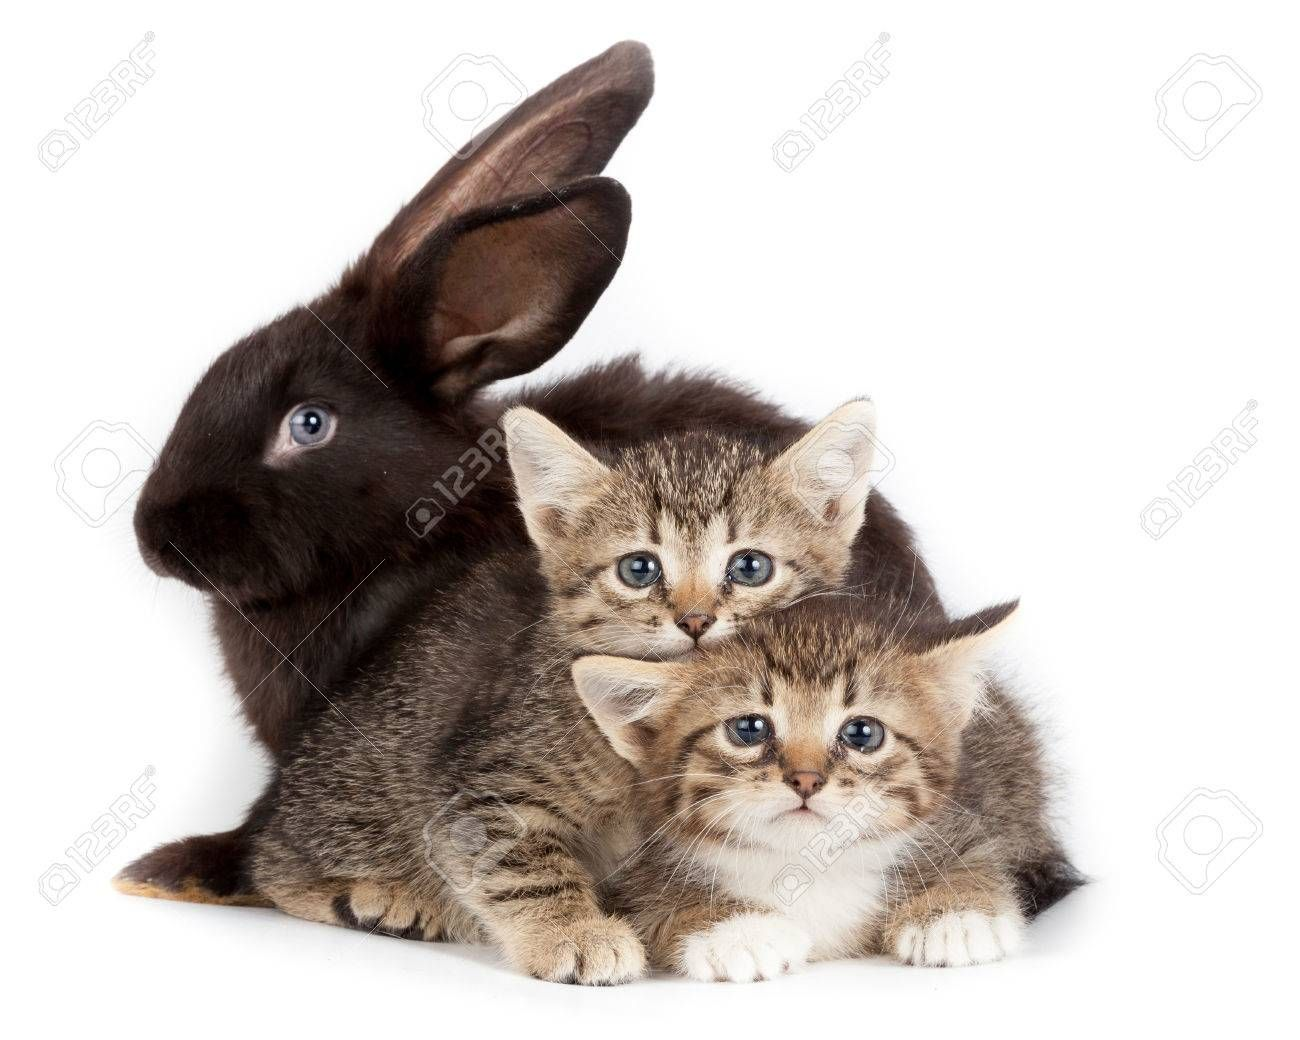 Friendship Animals And Pets Kitten And Rabbit In Studio Isolated On White Background Affiliate Pets Kitten Friends In 2020 Pet Kitten Animals Animals And Pets